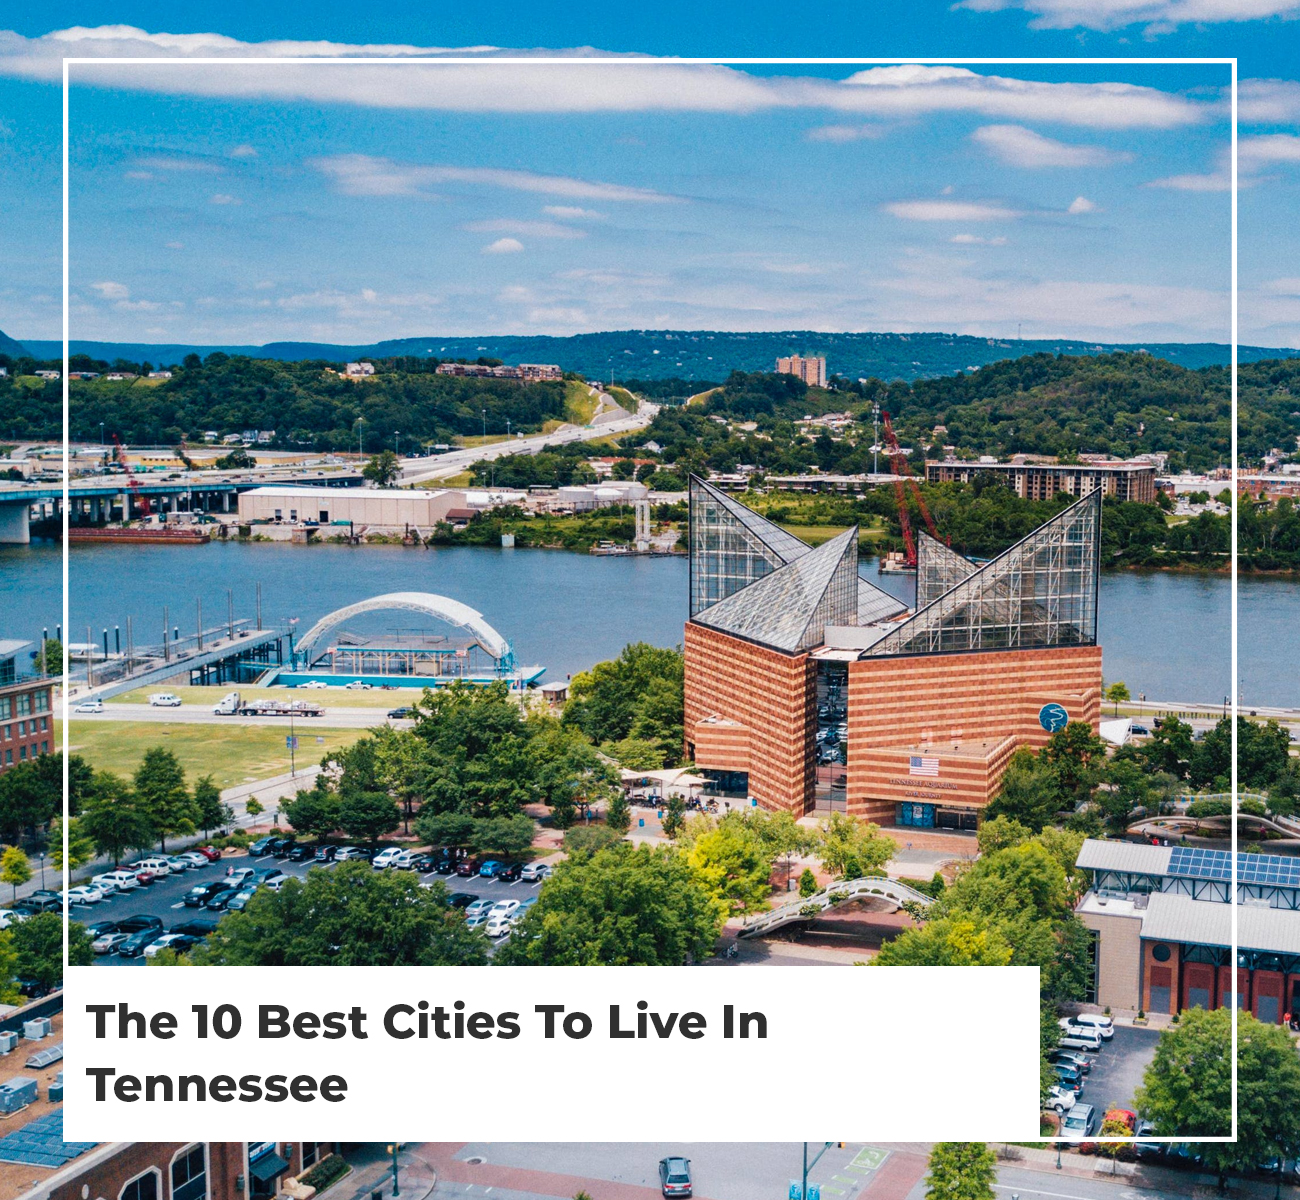 10 Best Cities To Live In Tennessee